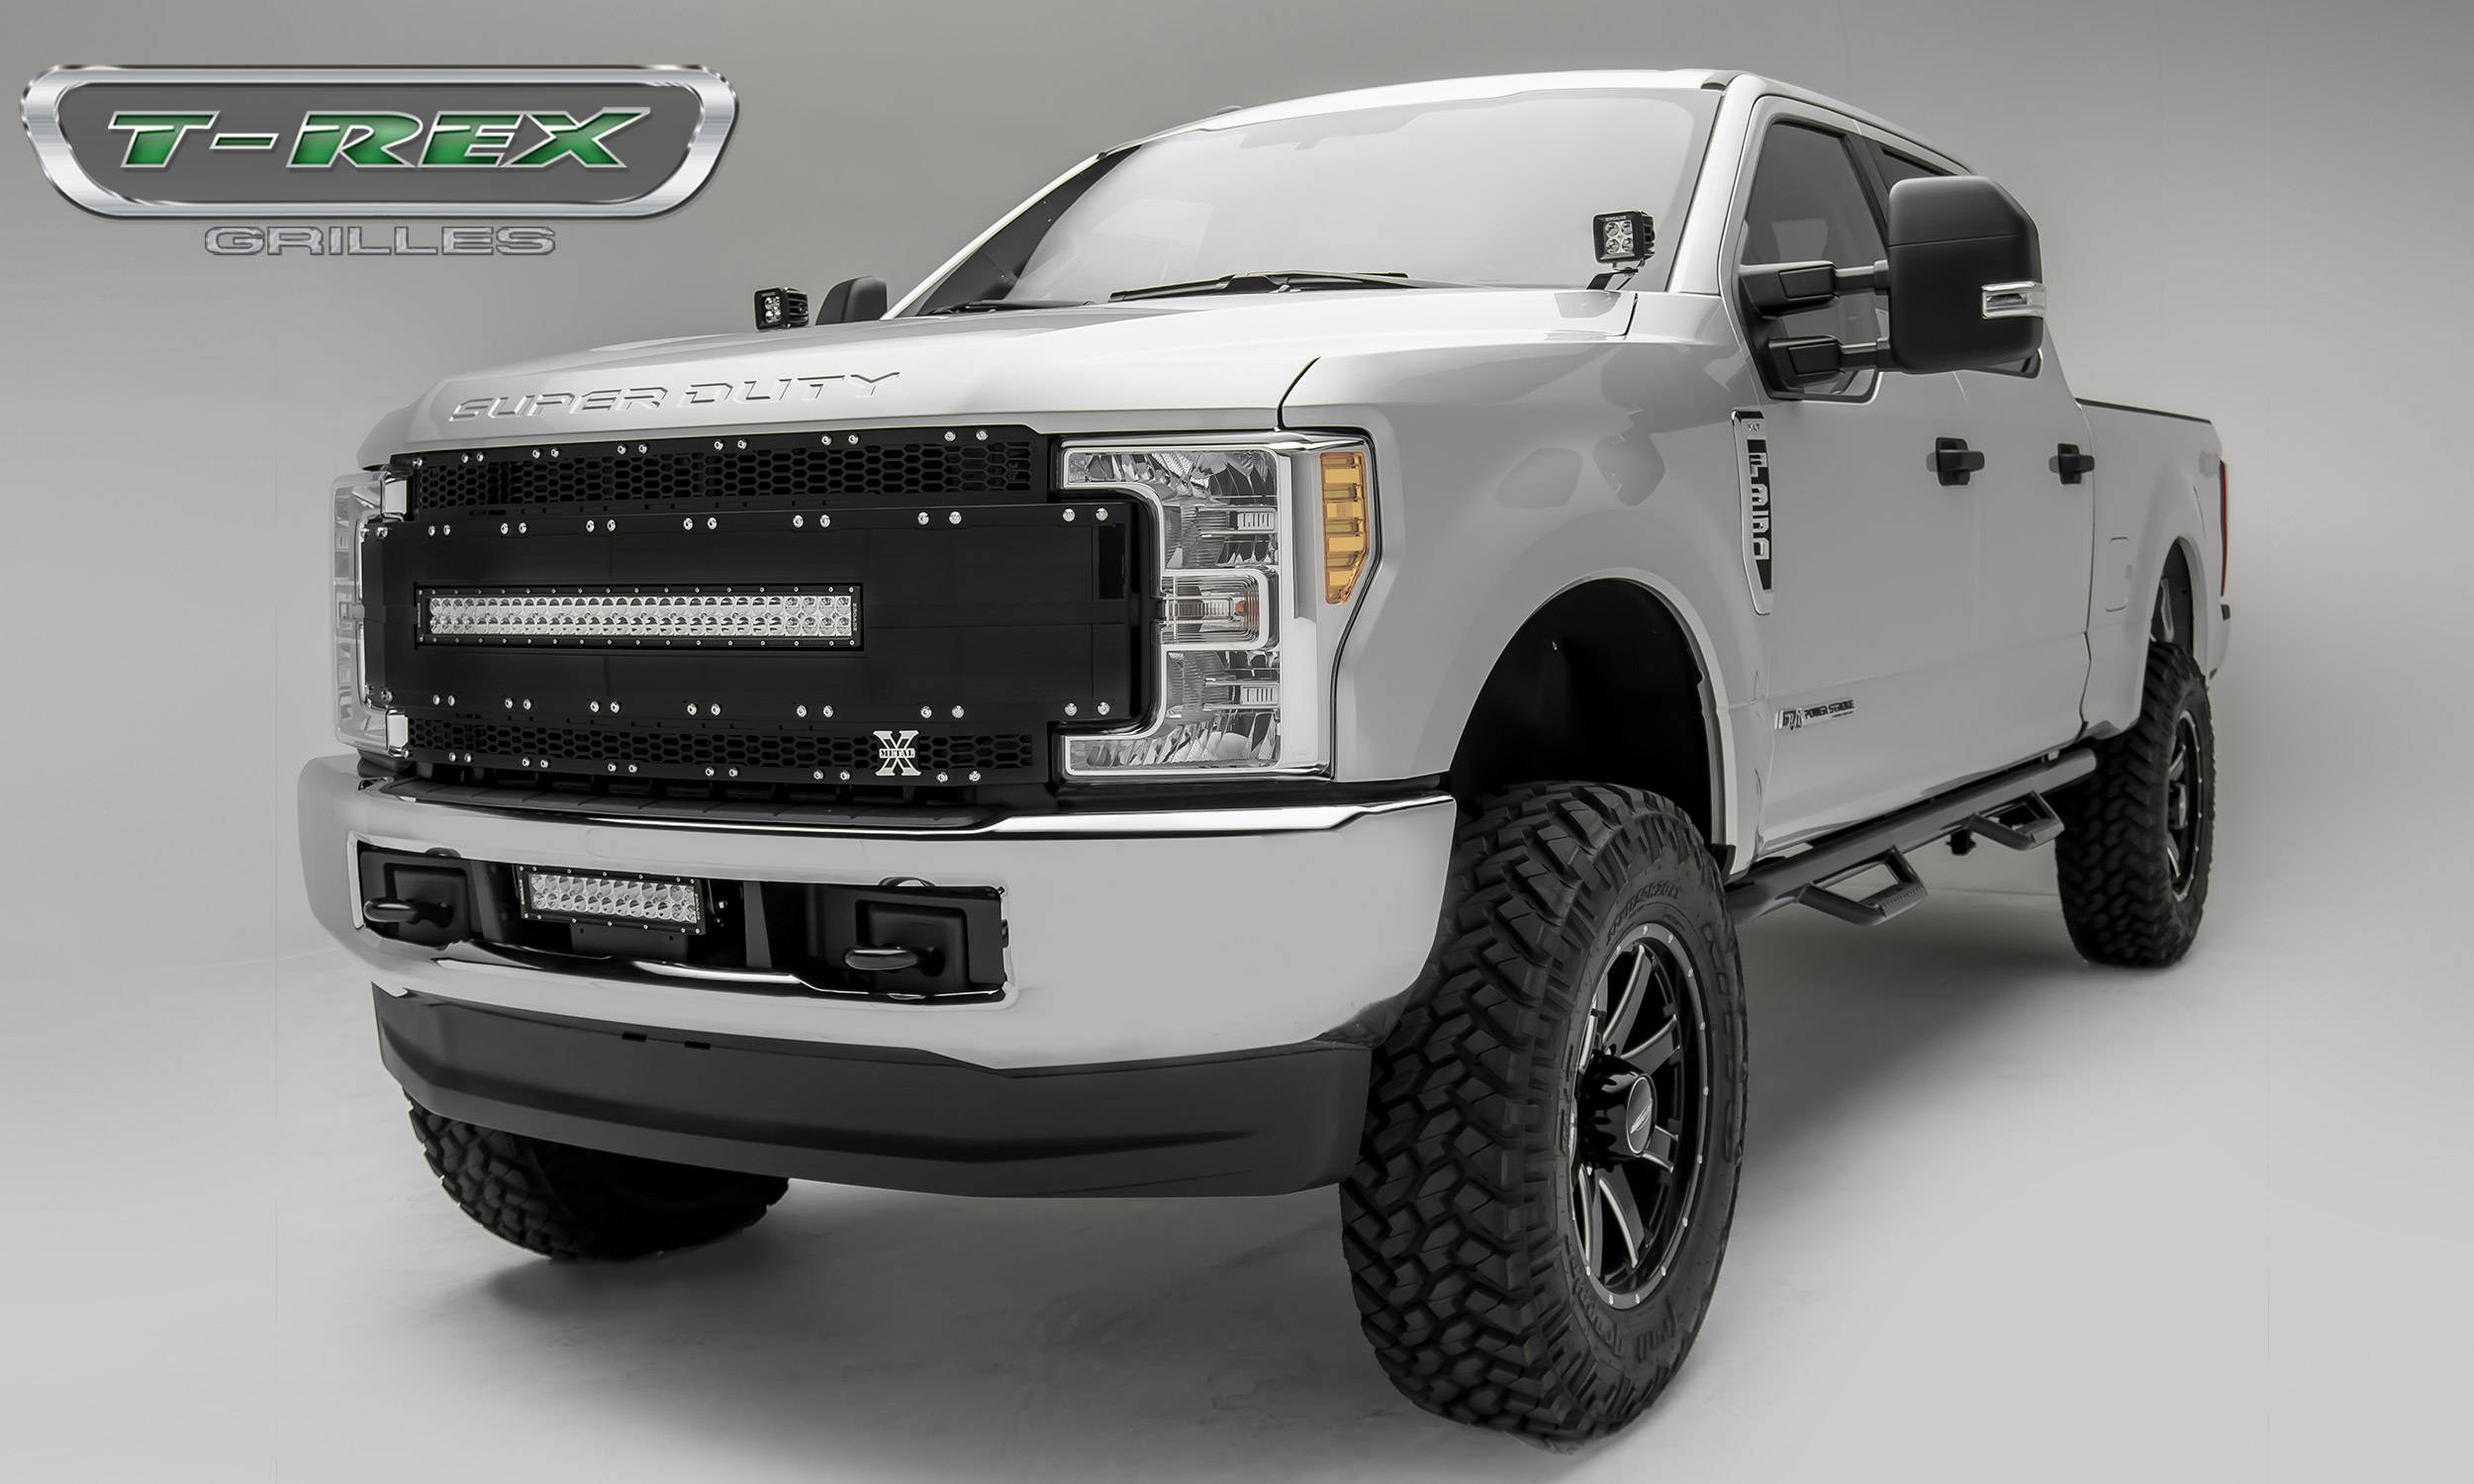 T rex ford f 250 f 350 super duty w camera provision torch al series main replacement grille 1 30 led light bar black w black mesh black